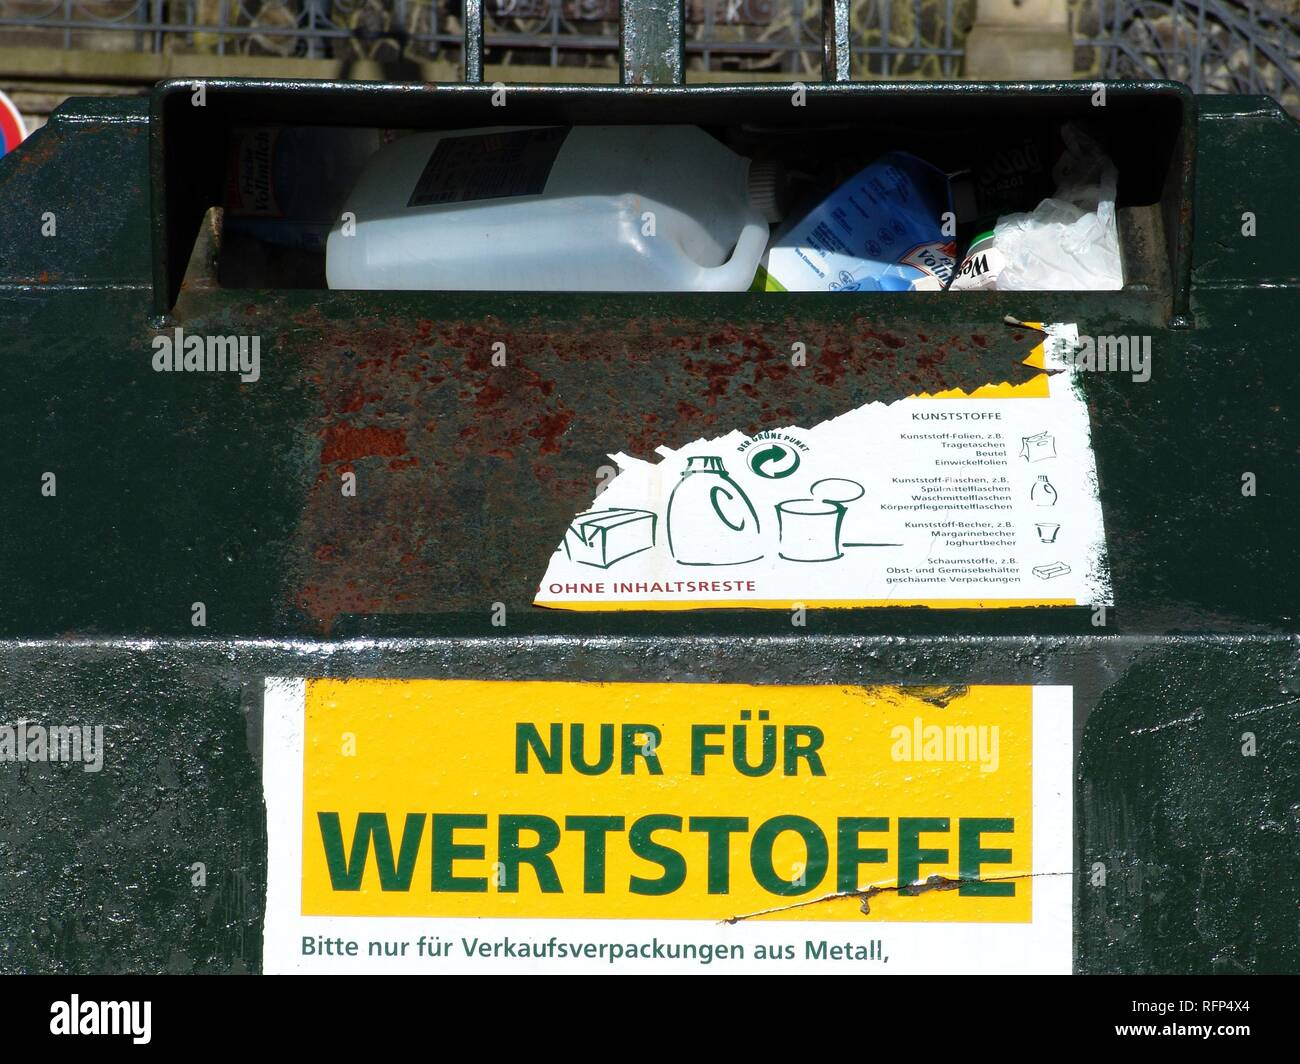 Container for recyclable materials, Hamburg, Germany - Stock Image